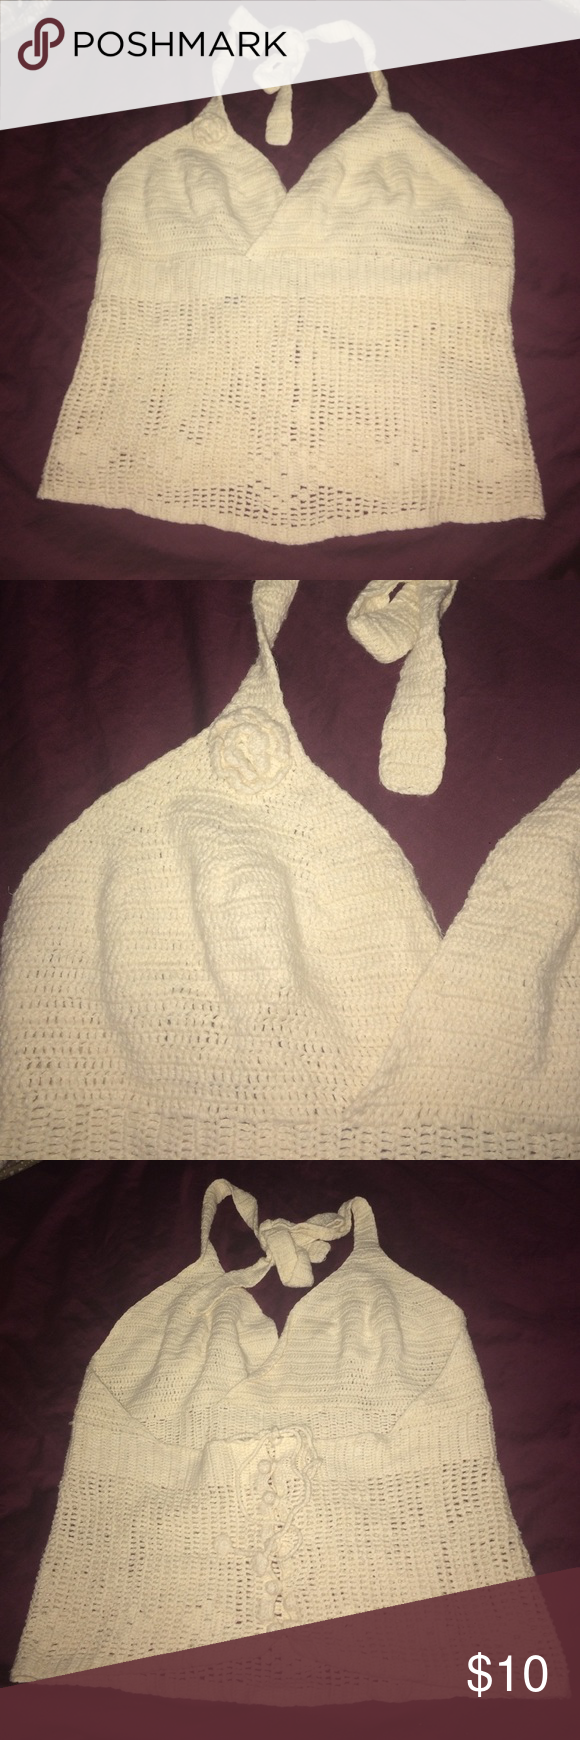 Cream crochet Gap halter top  Super hot cream crochet halter top from GAP. I wore this once and is in great condition! No flaws! This top has so many details and I tried to show them in the pics! Great for a bundle! GAP Tops